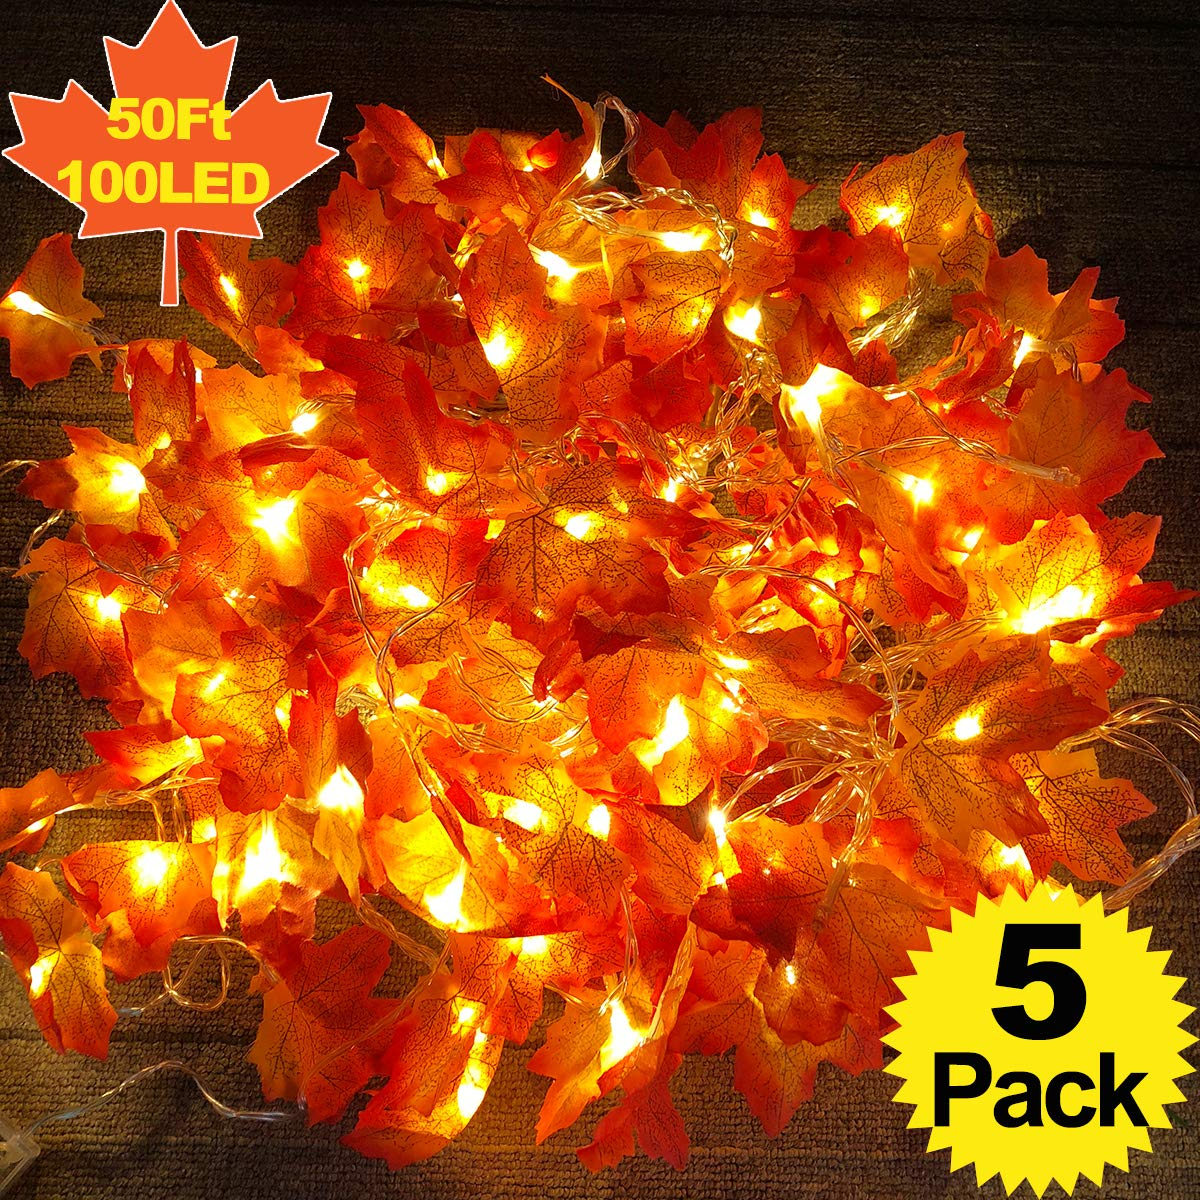 5 Pack Maple Leaves Garland String Lights,Thanksgiving Decorations Fall String Lights with 50 Ft/100 LED Maple Leaves for Indoor Outdoor Autumn Harvest Party Festival Home Patio Thanksgiving Decor